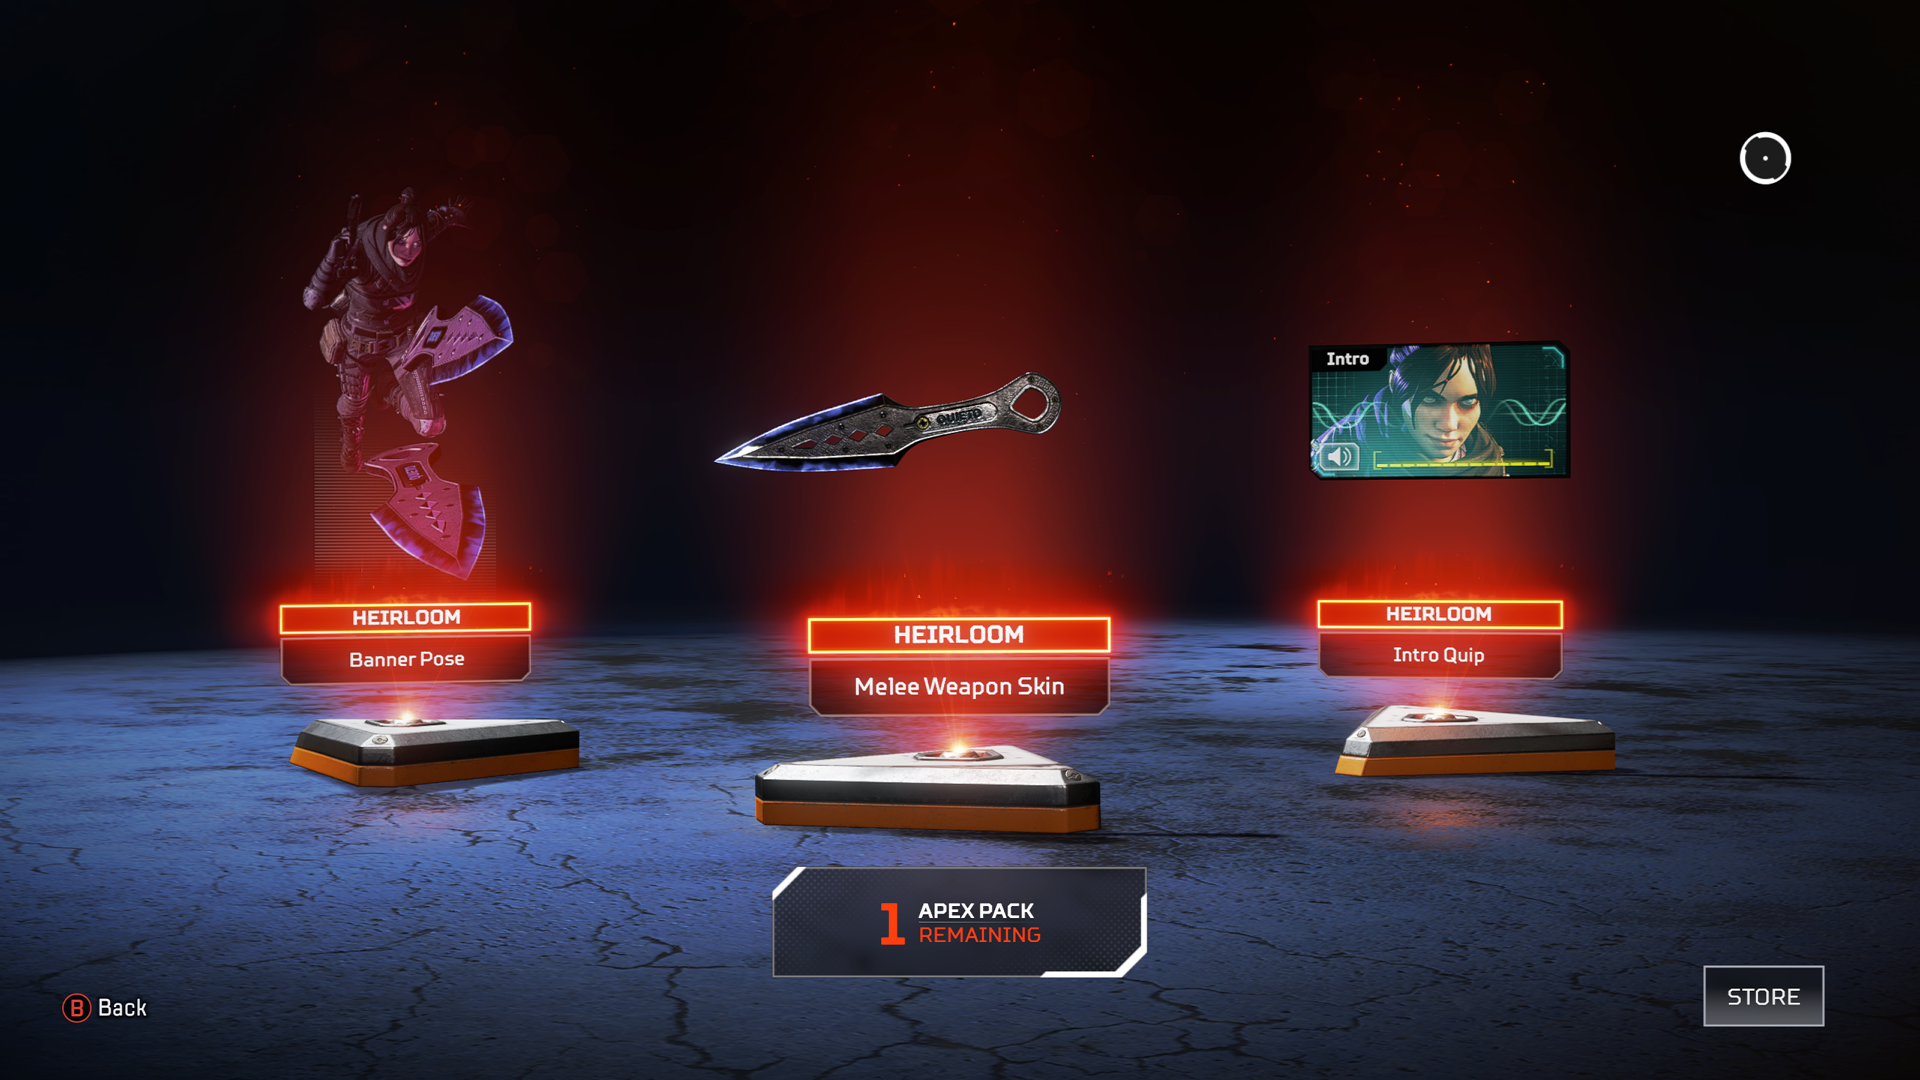 Apex Legends Player Spent $700 To Unlock A Rare Item, Says 'It Wasn't Worth It'